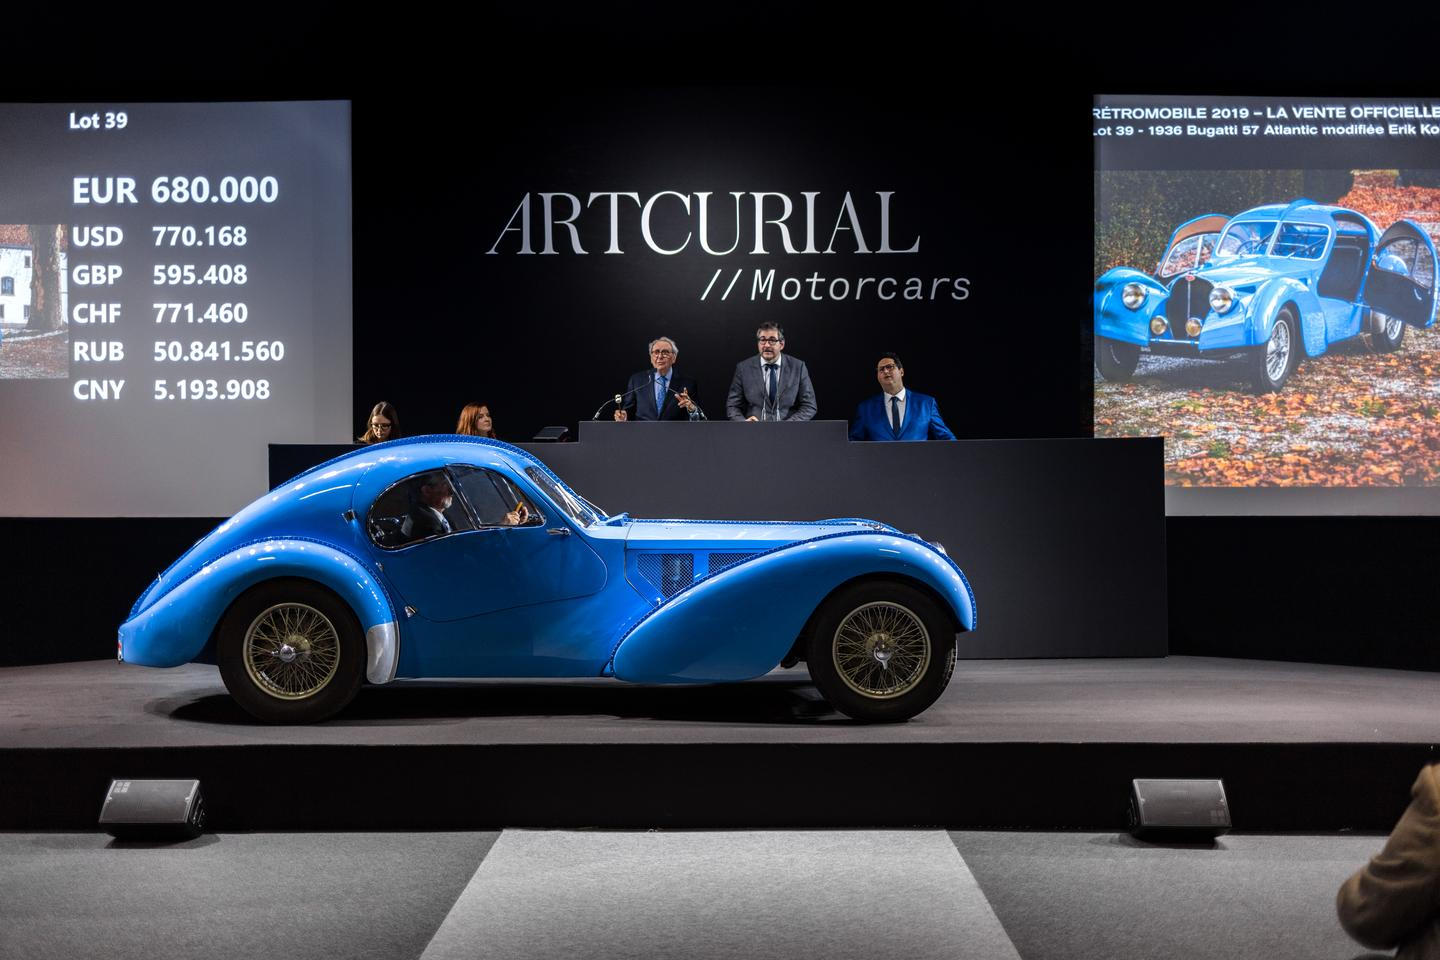 Highlights from the record-breaking 2019 Retromobile car